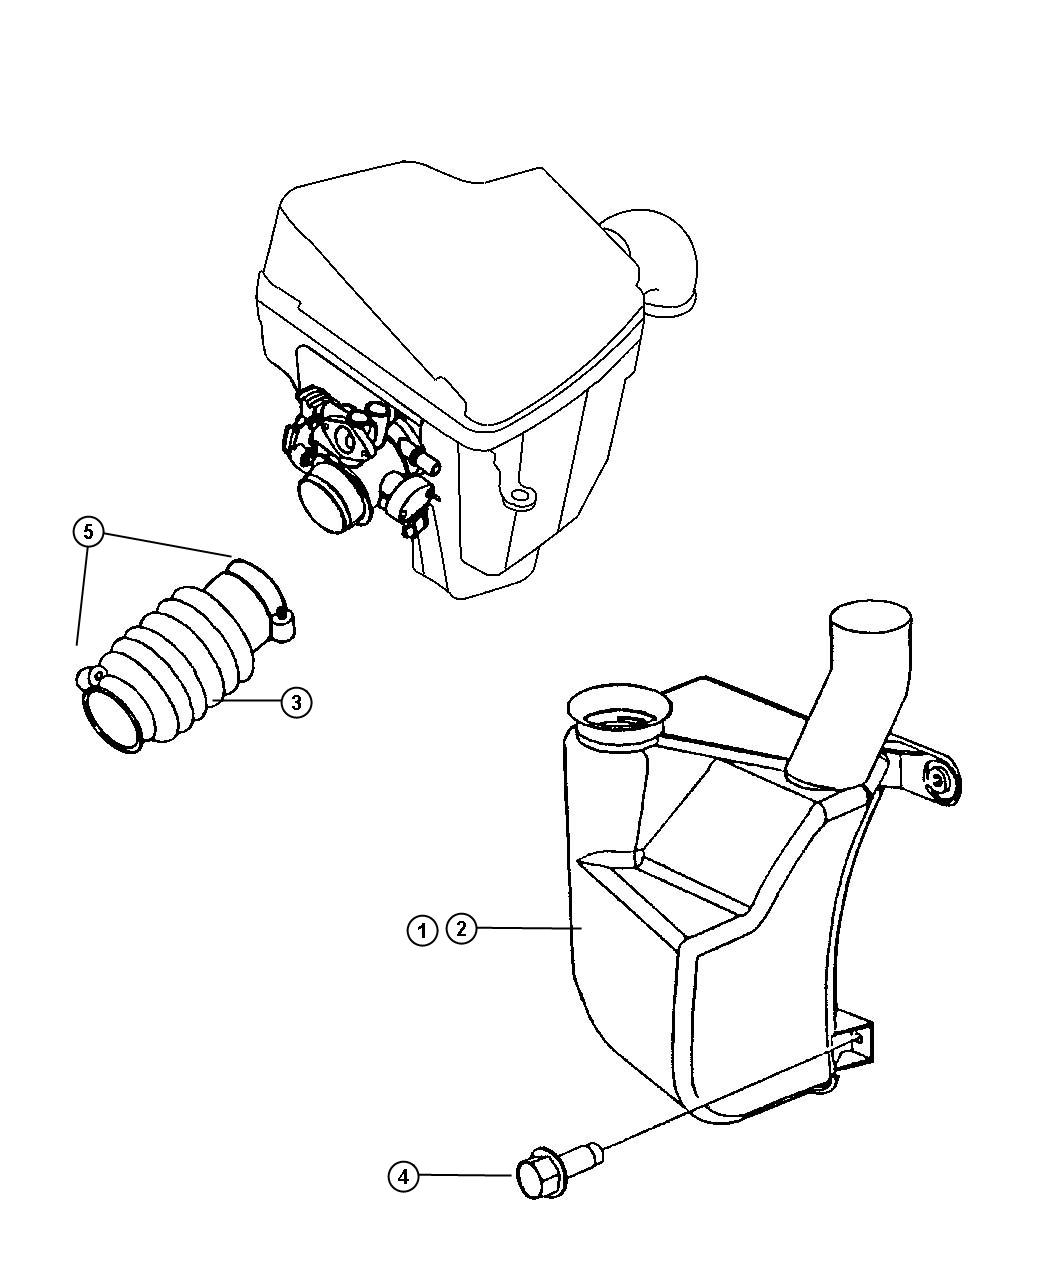 Dodge Neon Throttle Diagram